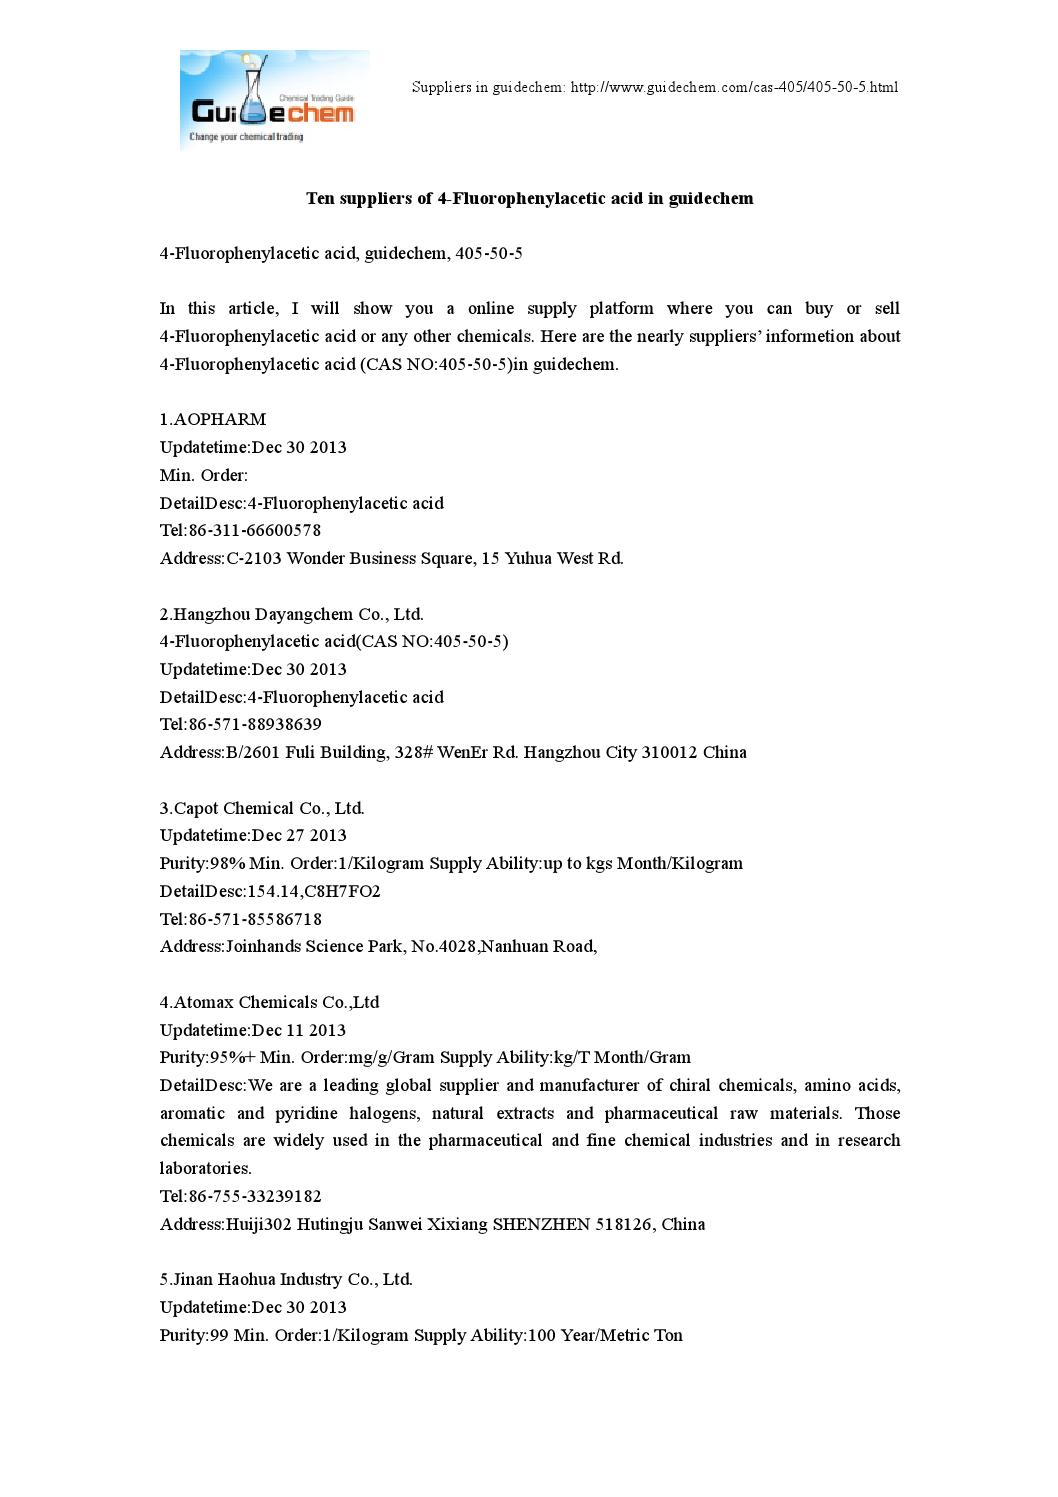 Ten suppliers of 4-Fluorophenylacetic acid in guidechem by